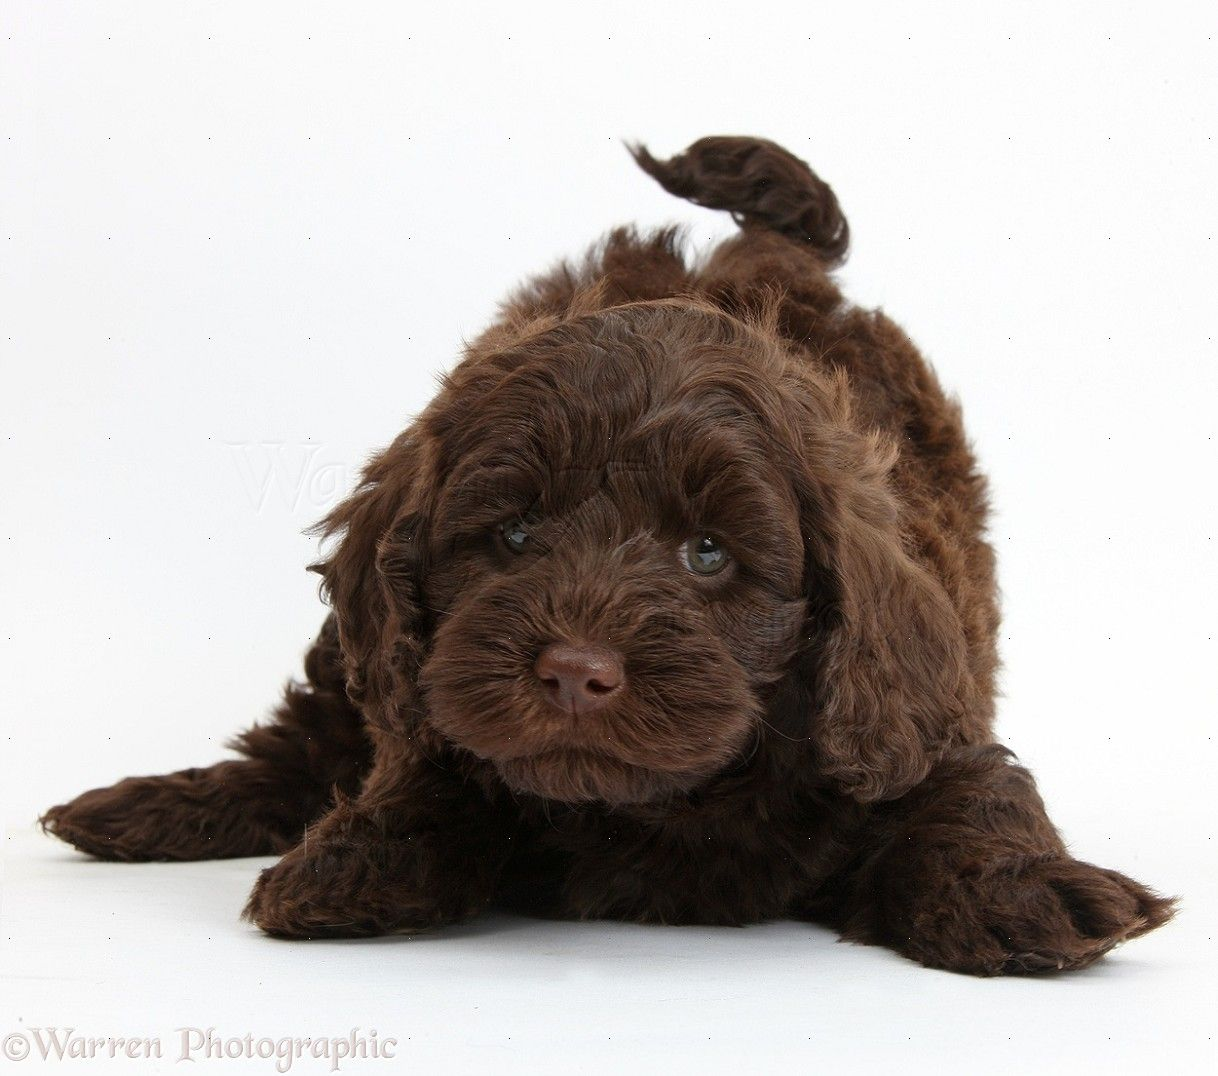 Dog Cute Chocolate Toy Goldendoodle Puppy In Play Bow Photo Goldendoodle Puppy Chocolate Goldendoodle Toy Goldendoodle